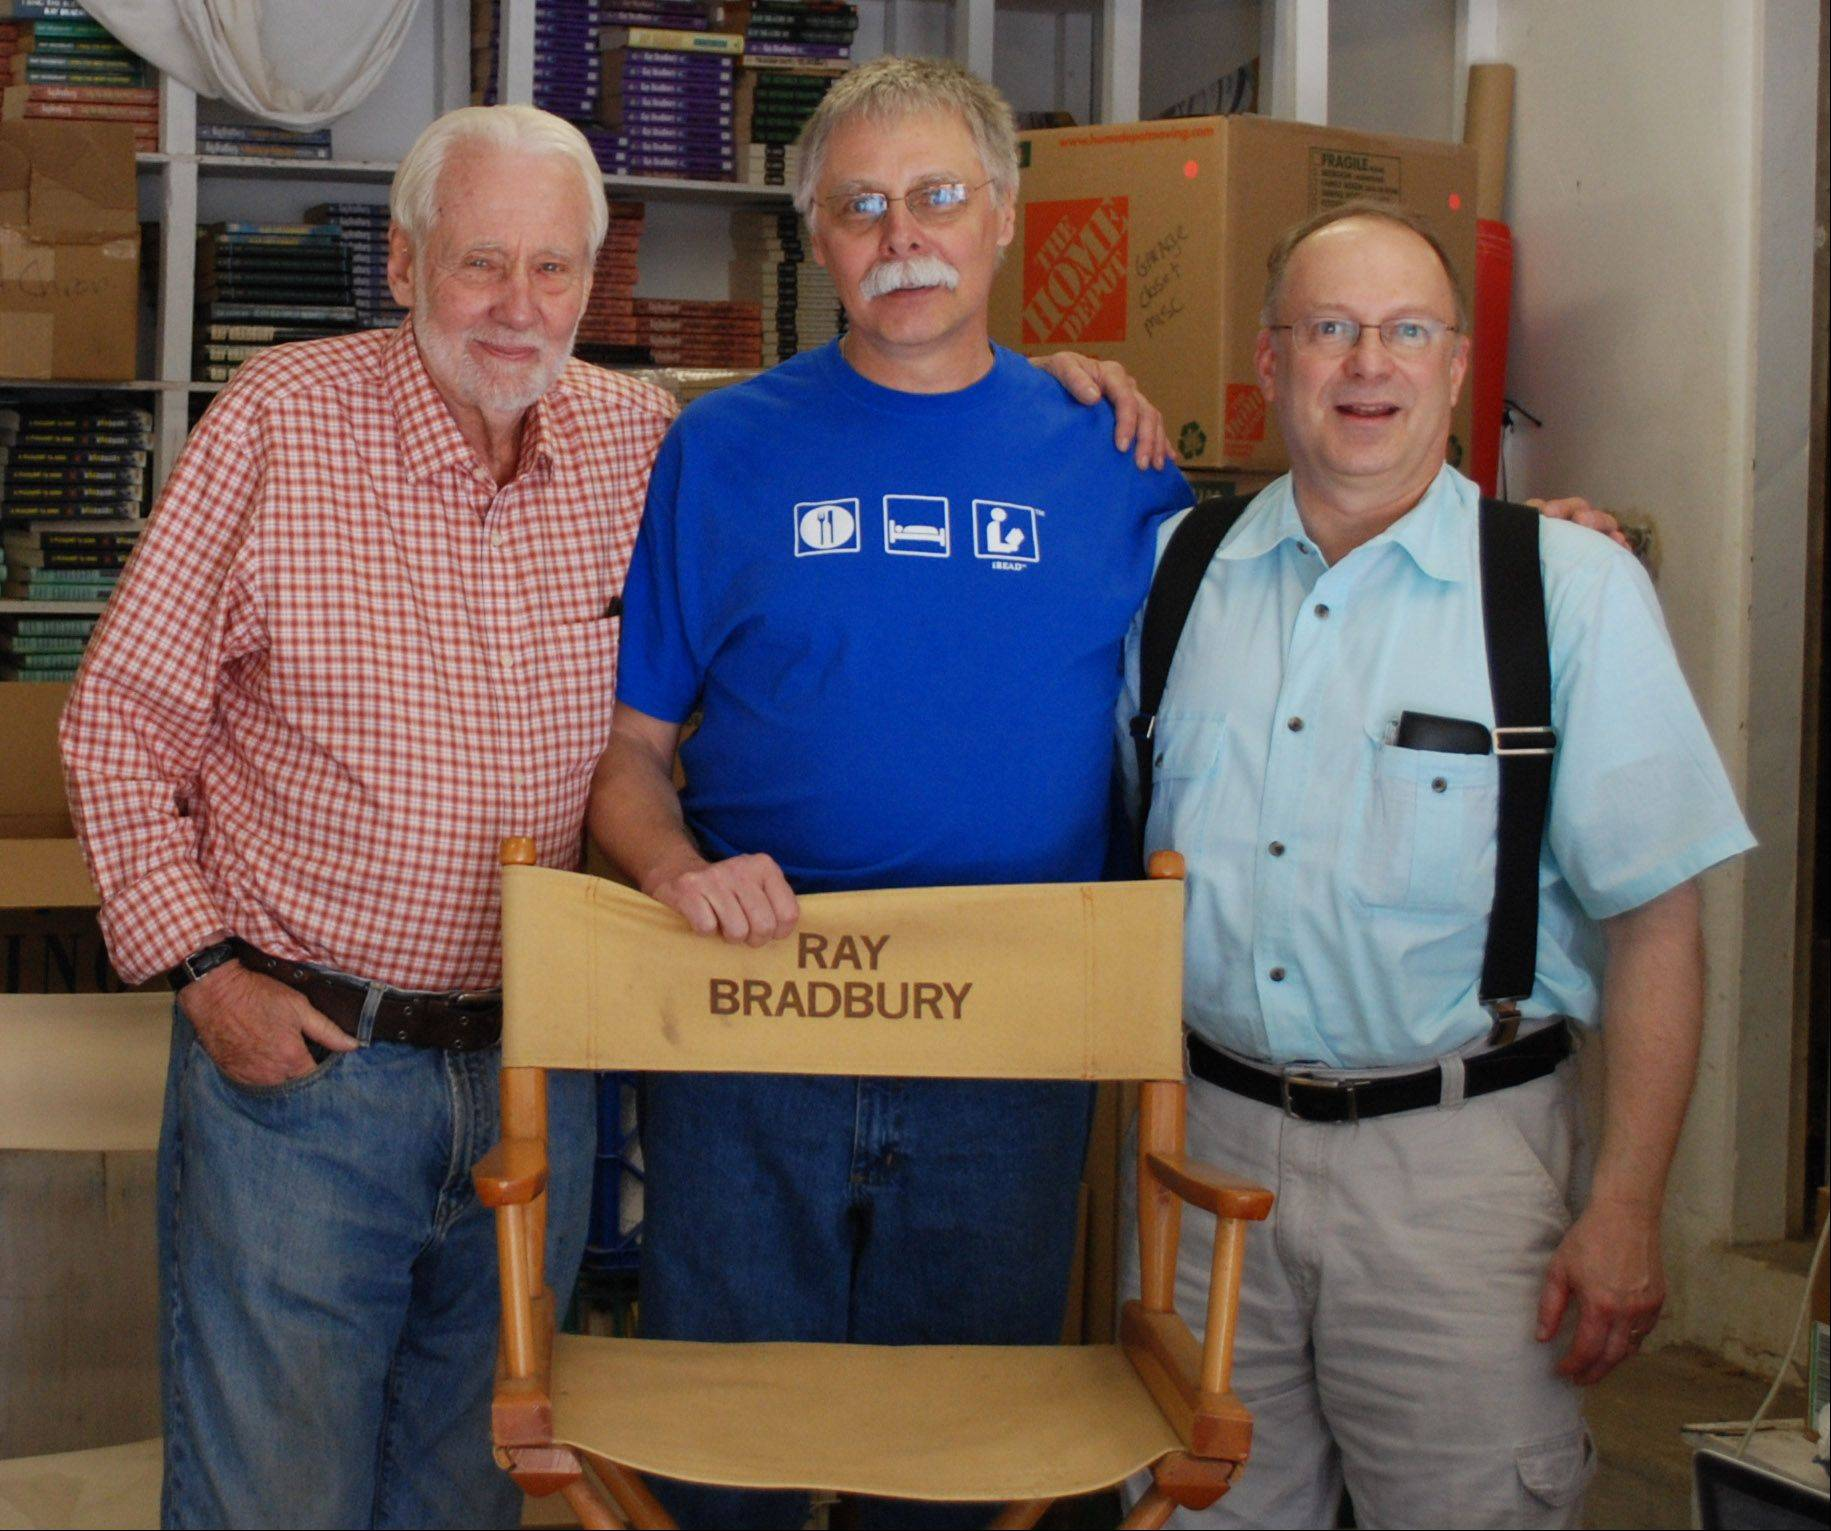 From left: Donn Albright, biographer and illustrator for Ray Bradbury; Richard Lee; and Jonathan R. Eller, director of the Center for Ray Bradbury Studies at Indiana University.